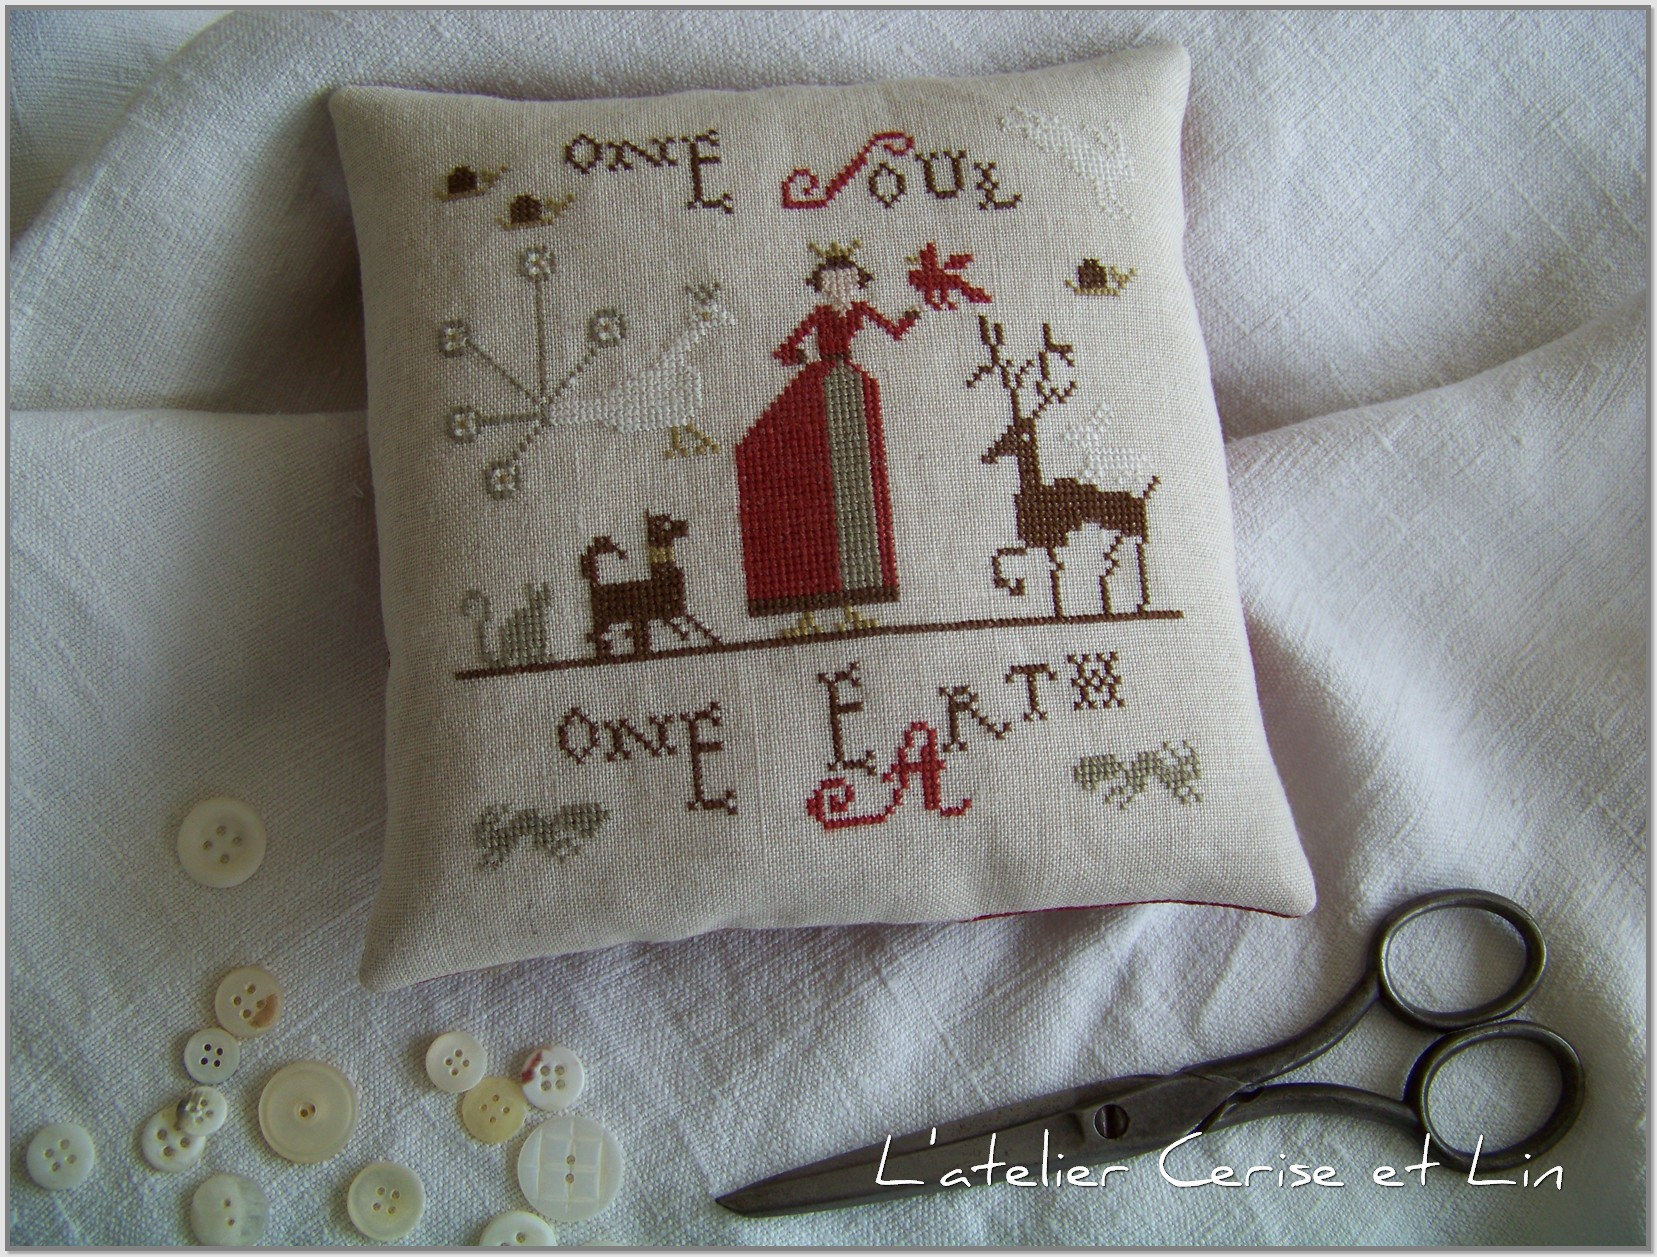 Coussin One Soul One Eartb 003